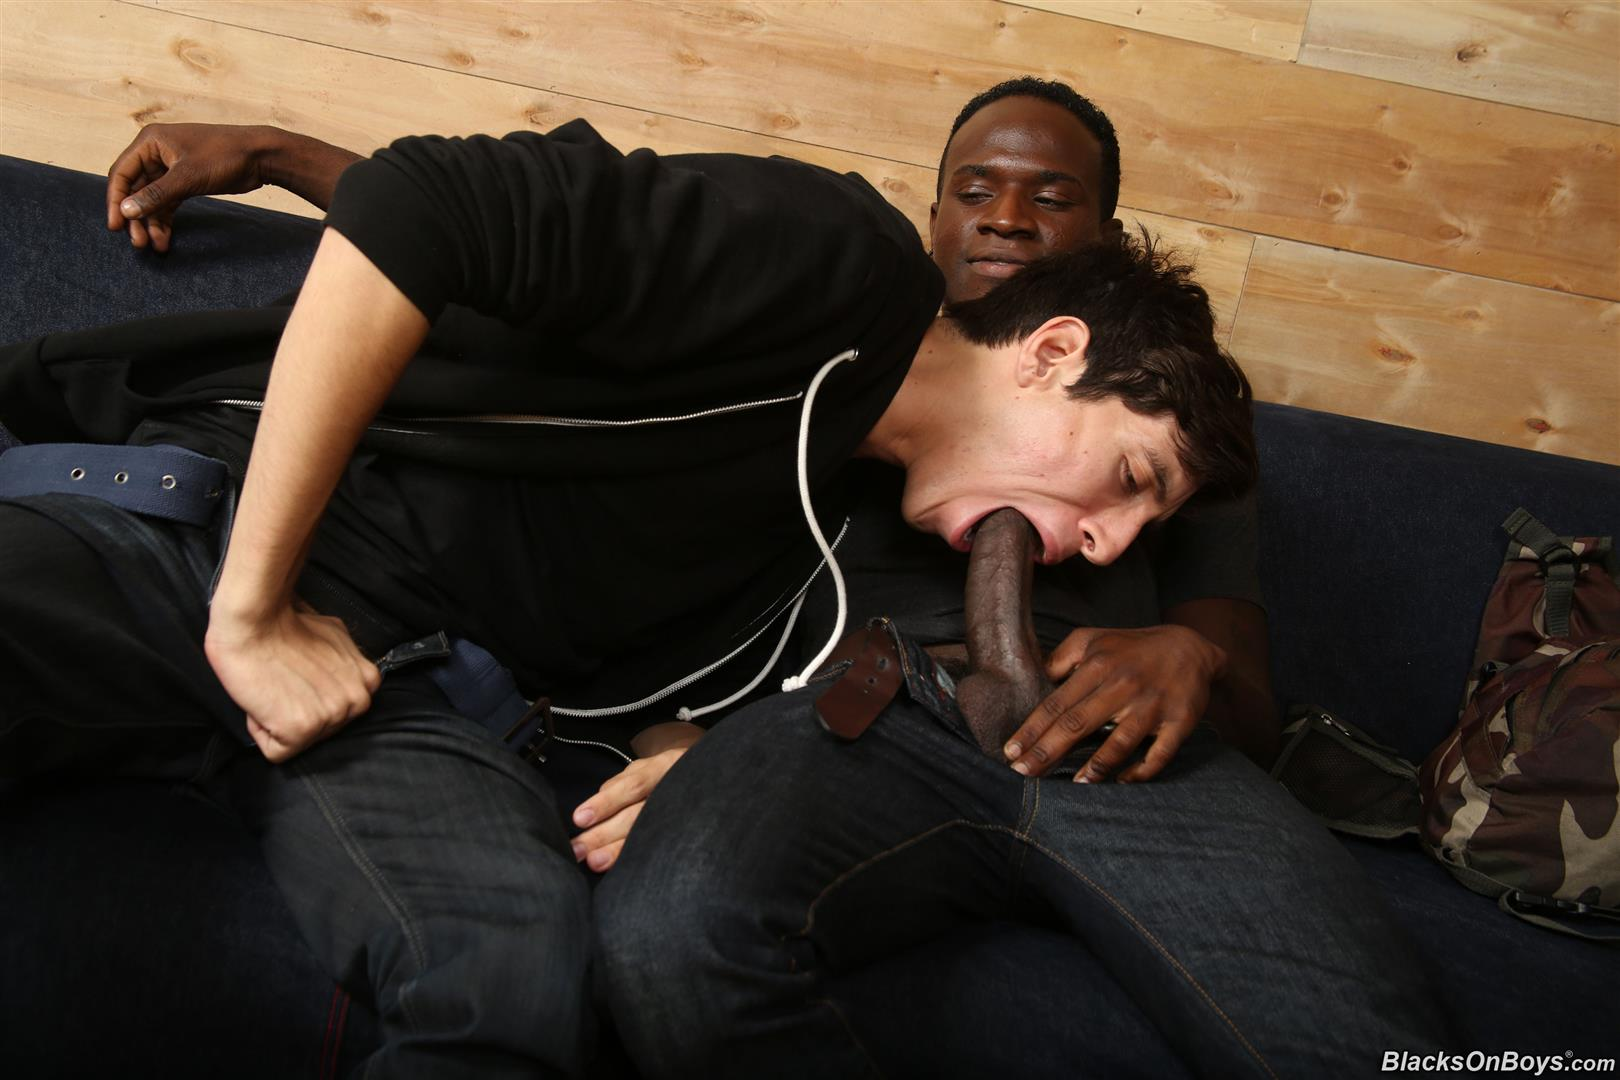 Blacks-On-Boys-Billy-Eastmore-and-Tyko-Interracial-Gay-Fucking-Amateur-Gay-Porn-04 Amateur College Dude Takes His First Big Black Cock Up The Ass